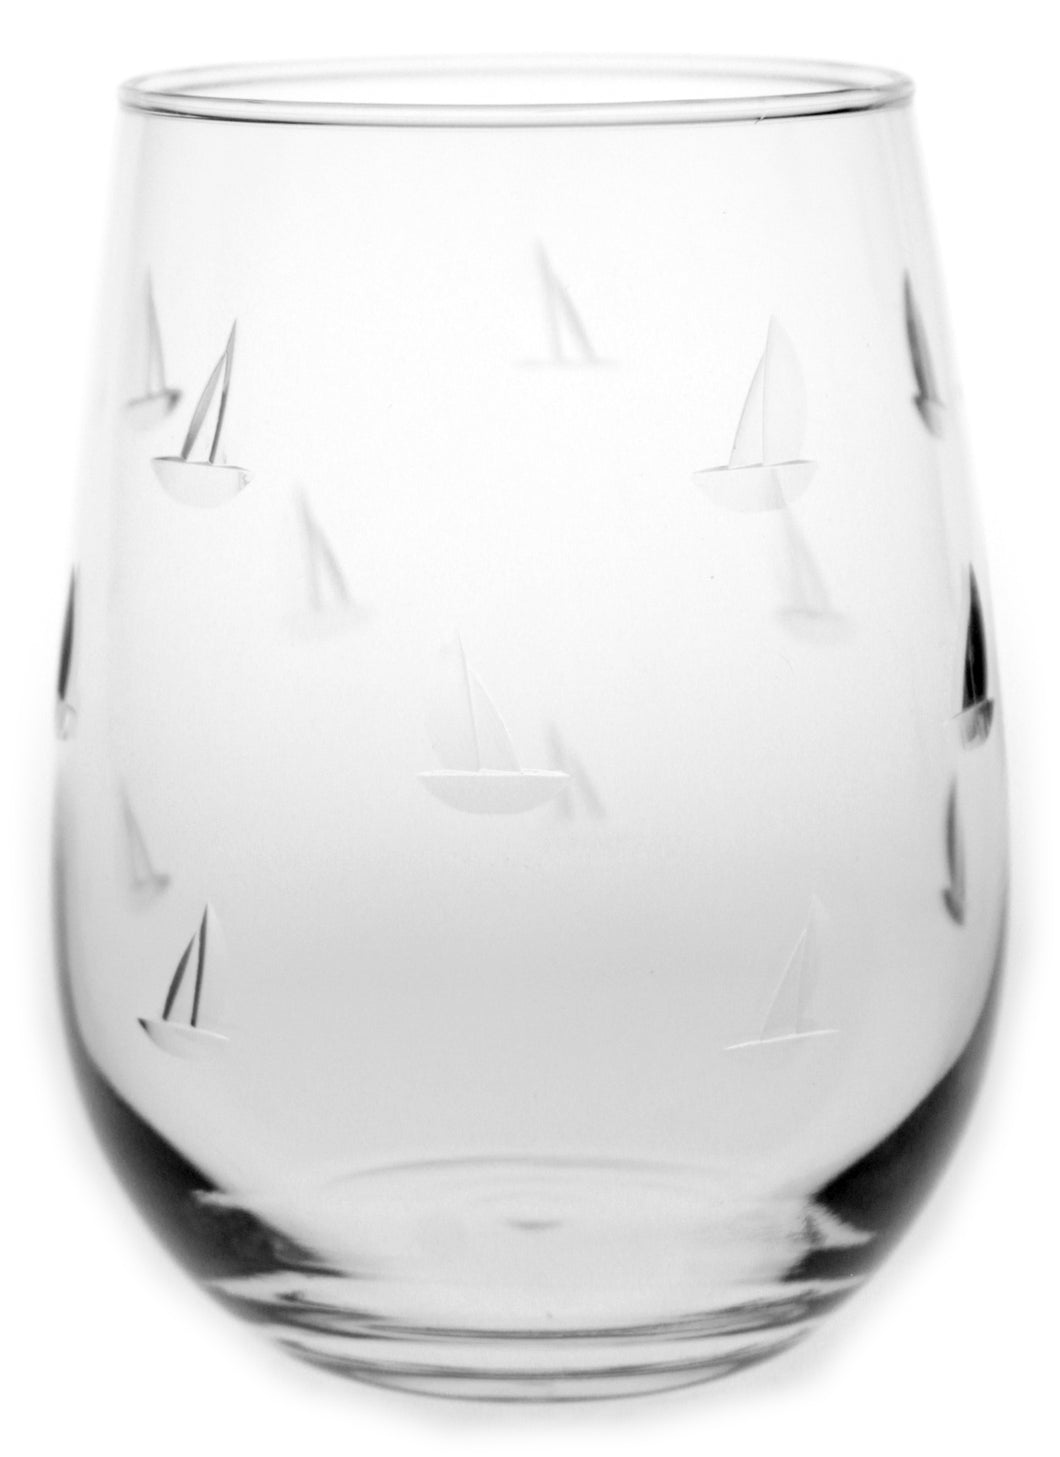 Sailing 17oz Stemless Wines-Set of 4 - MaisonBeach